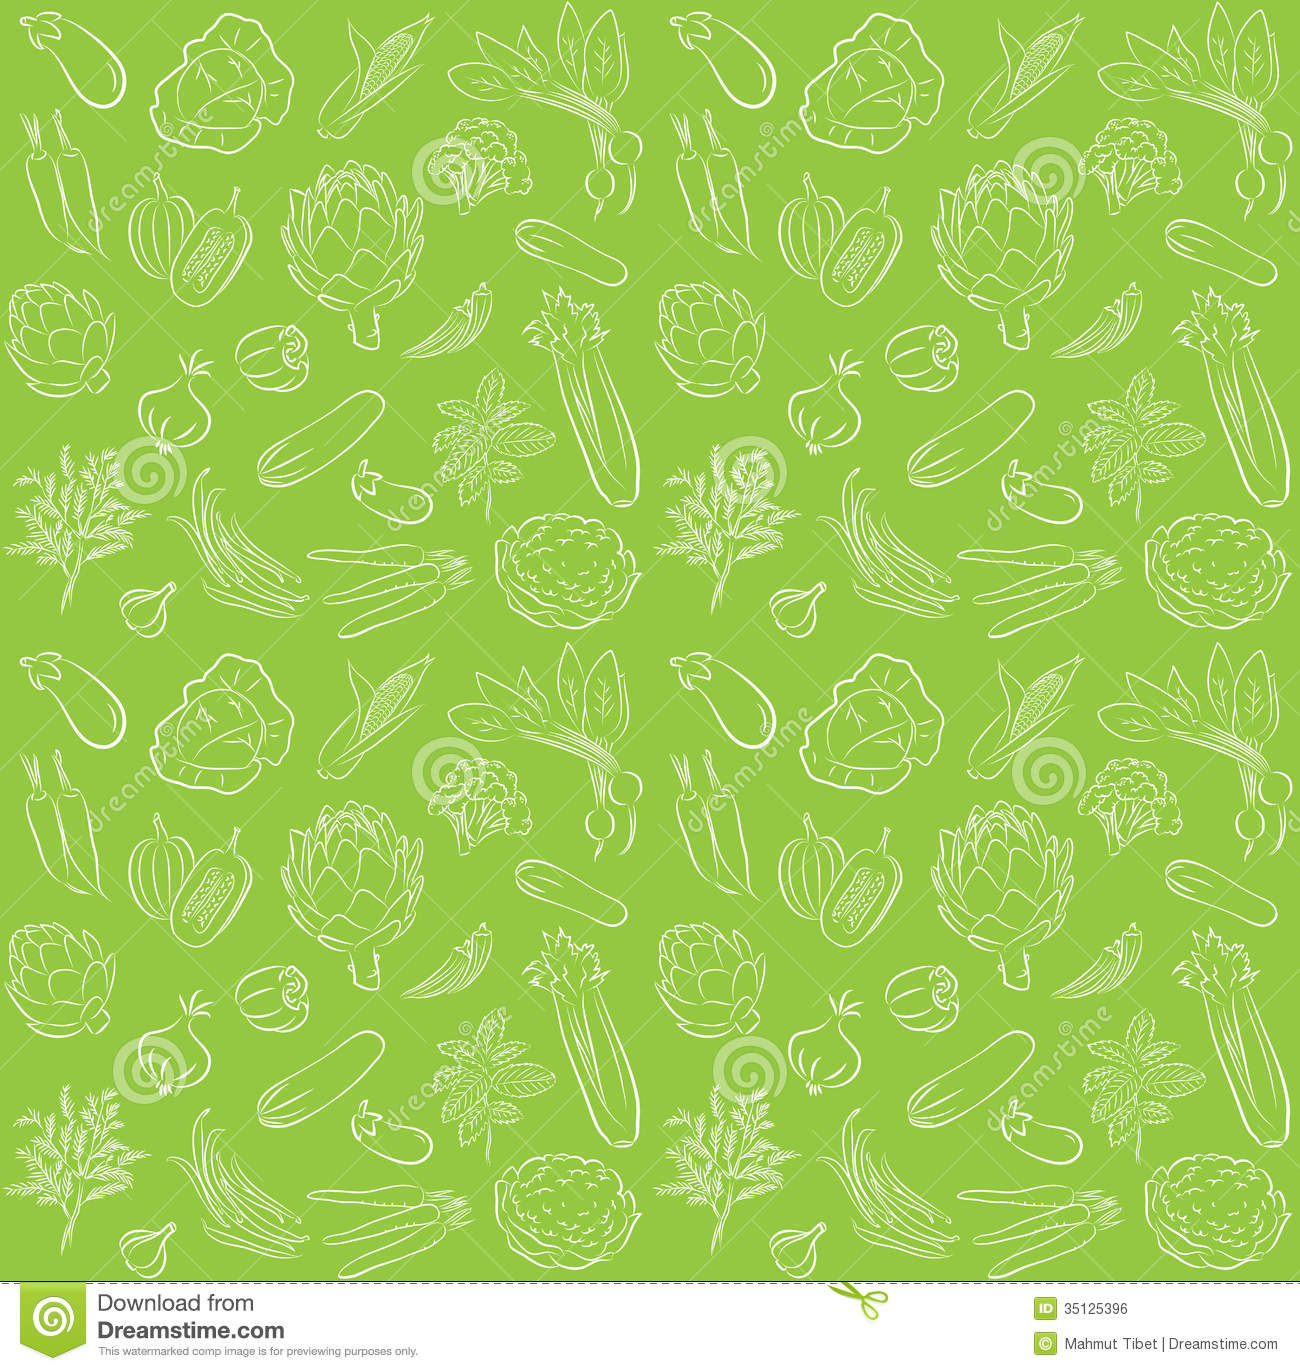 Vegetable pattern - photo#22